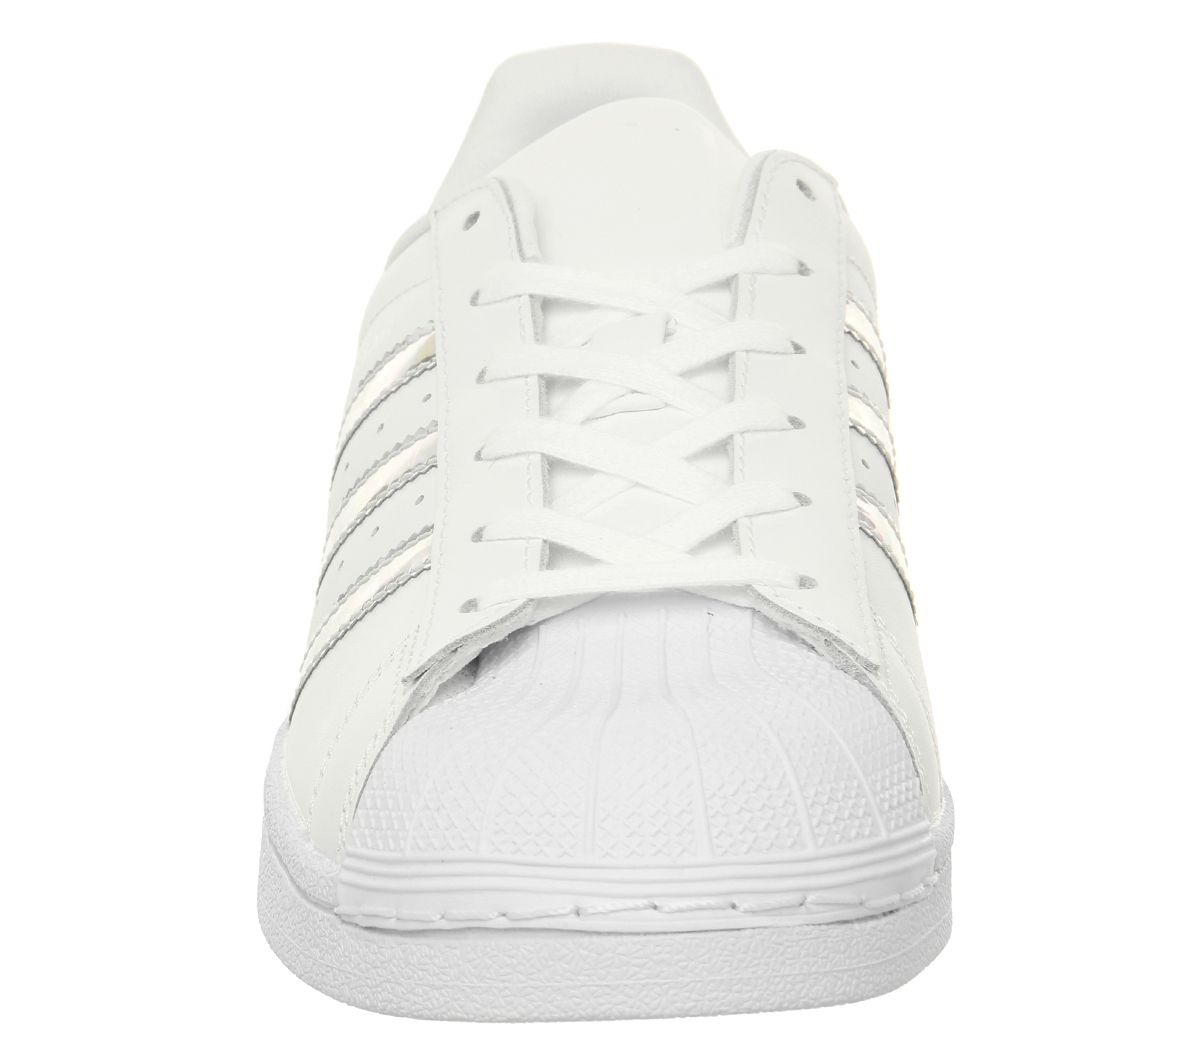 a8867704145 Sentinel Womens Adidas Superstar Gs Trainers White Silver Holographic  Trainers Shoes